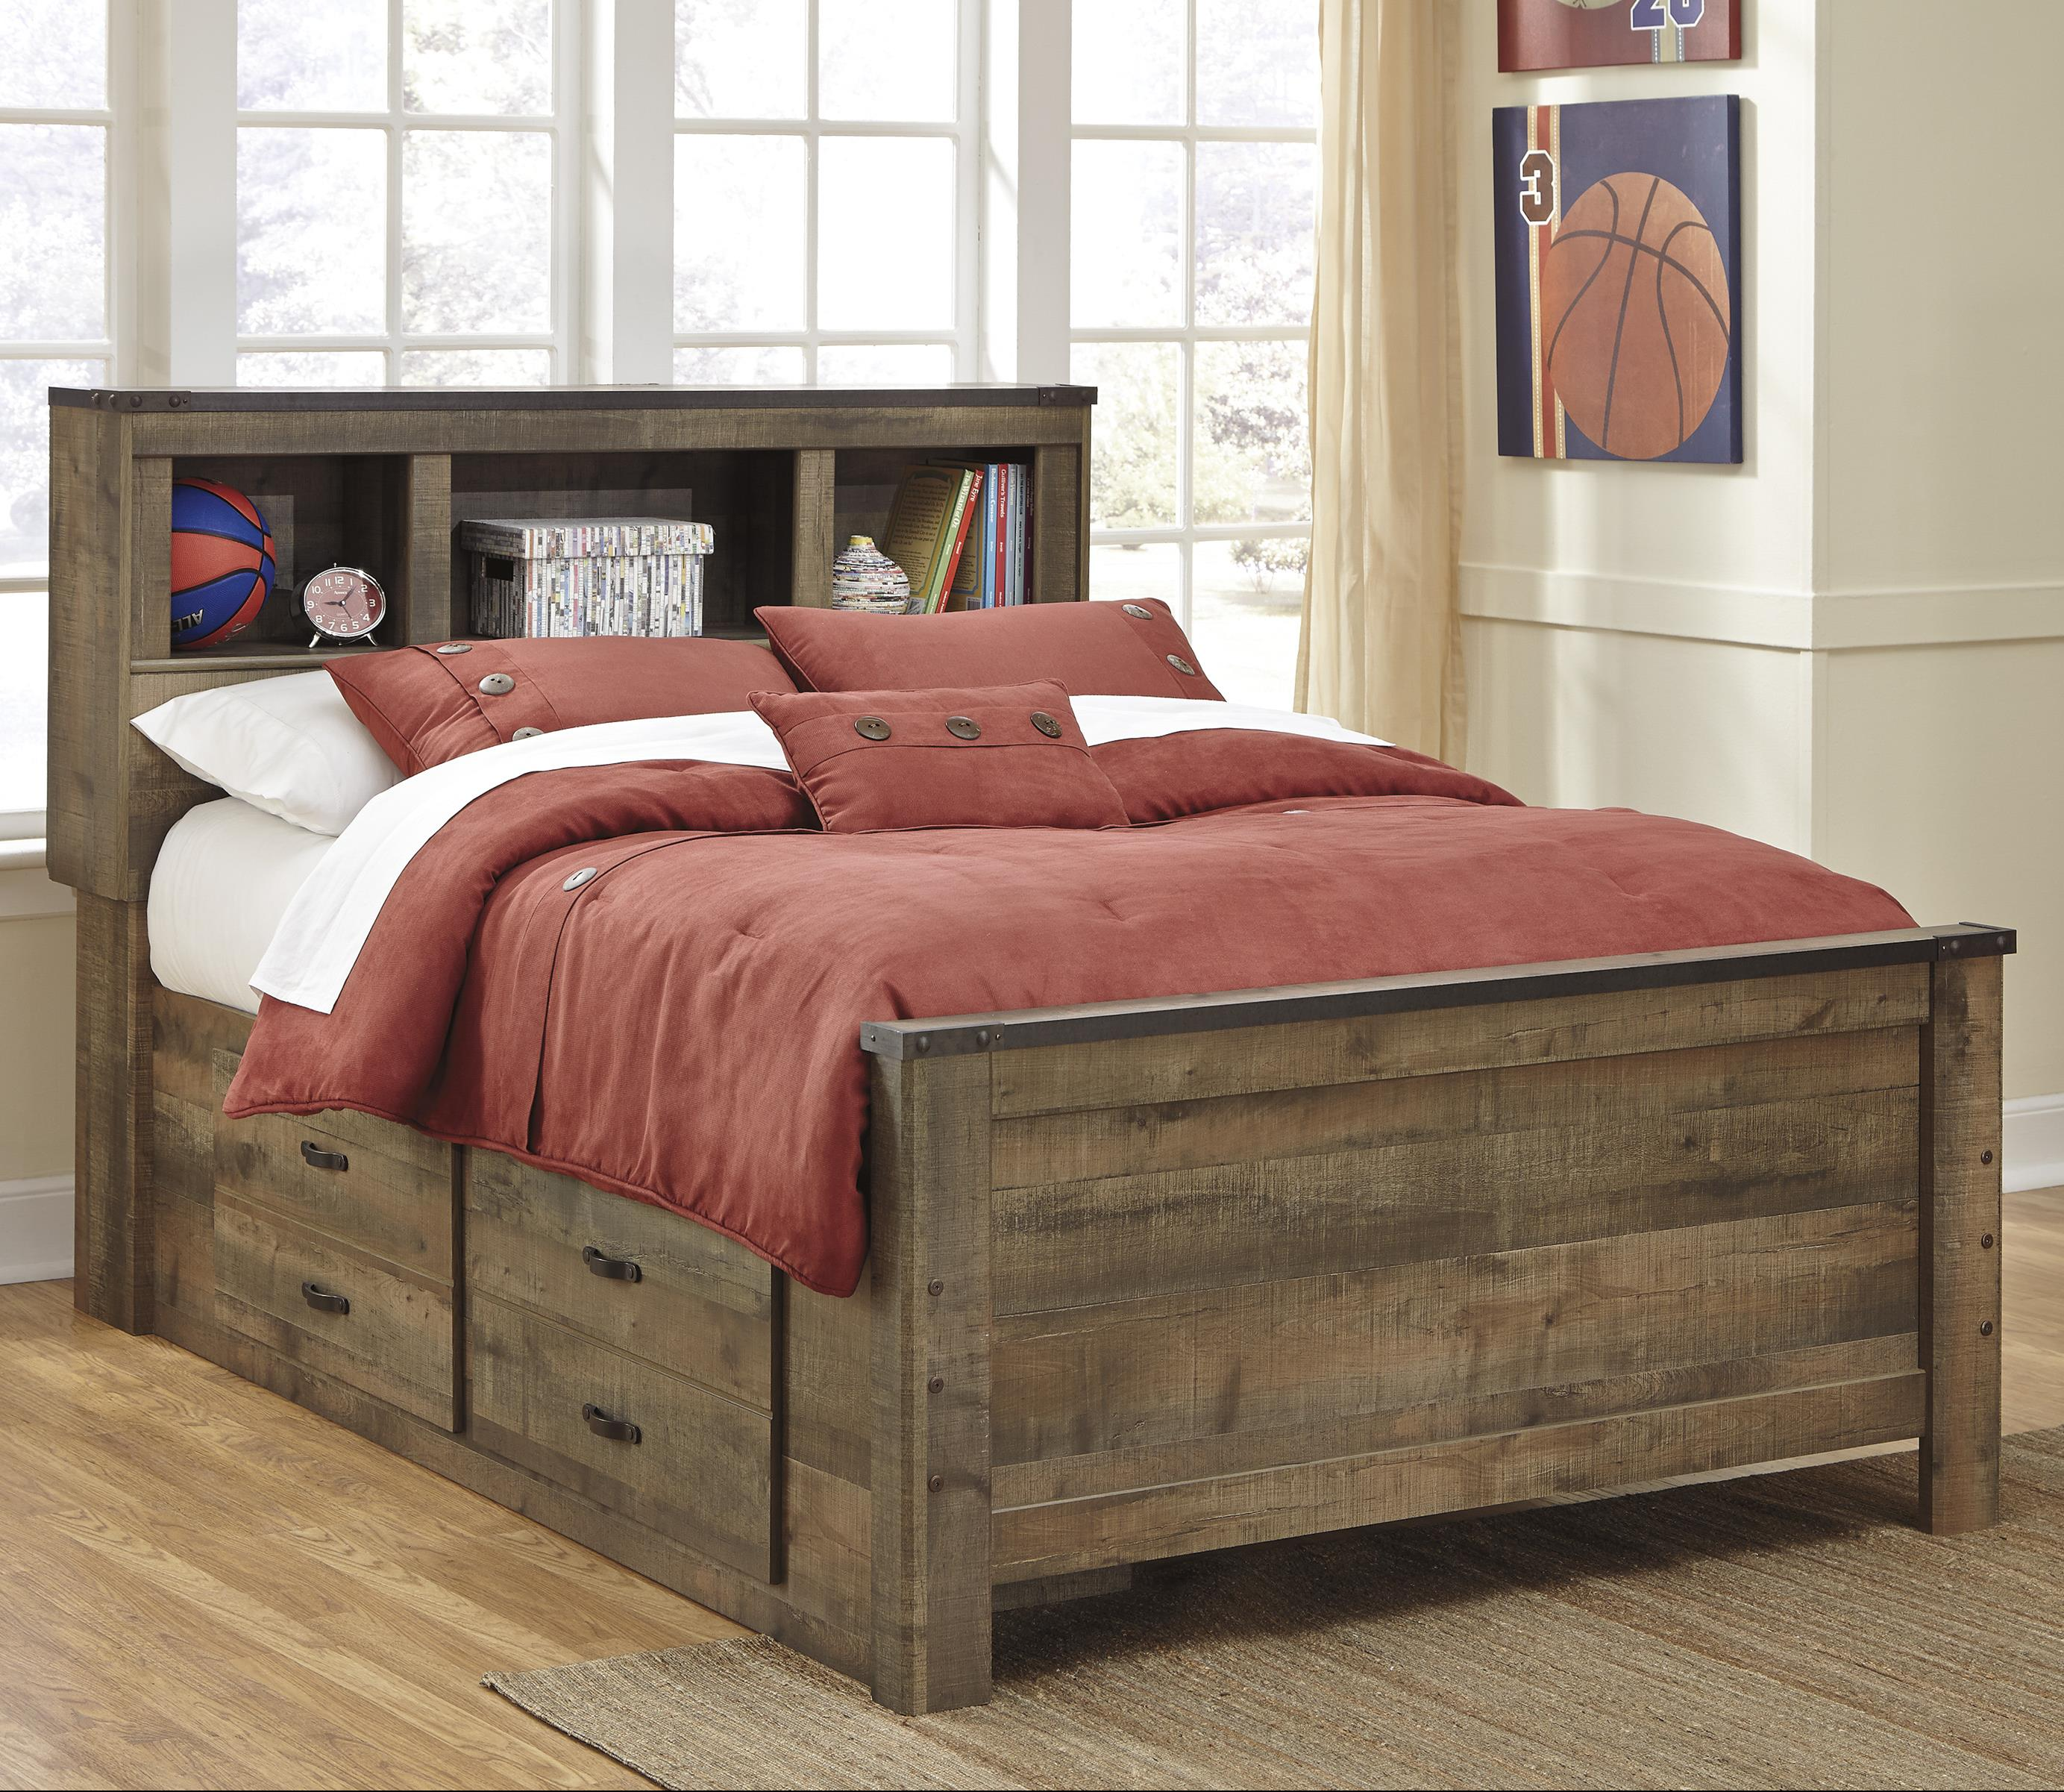 Rustic Look Full Bookcase Bed With Under Bed Storage By